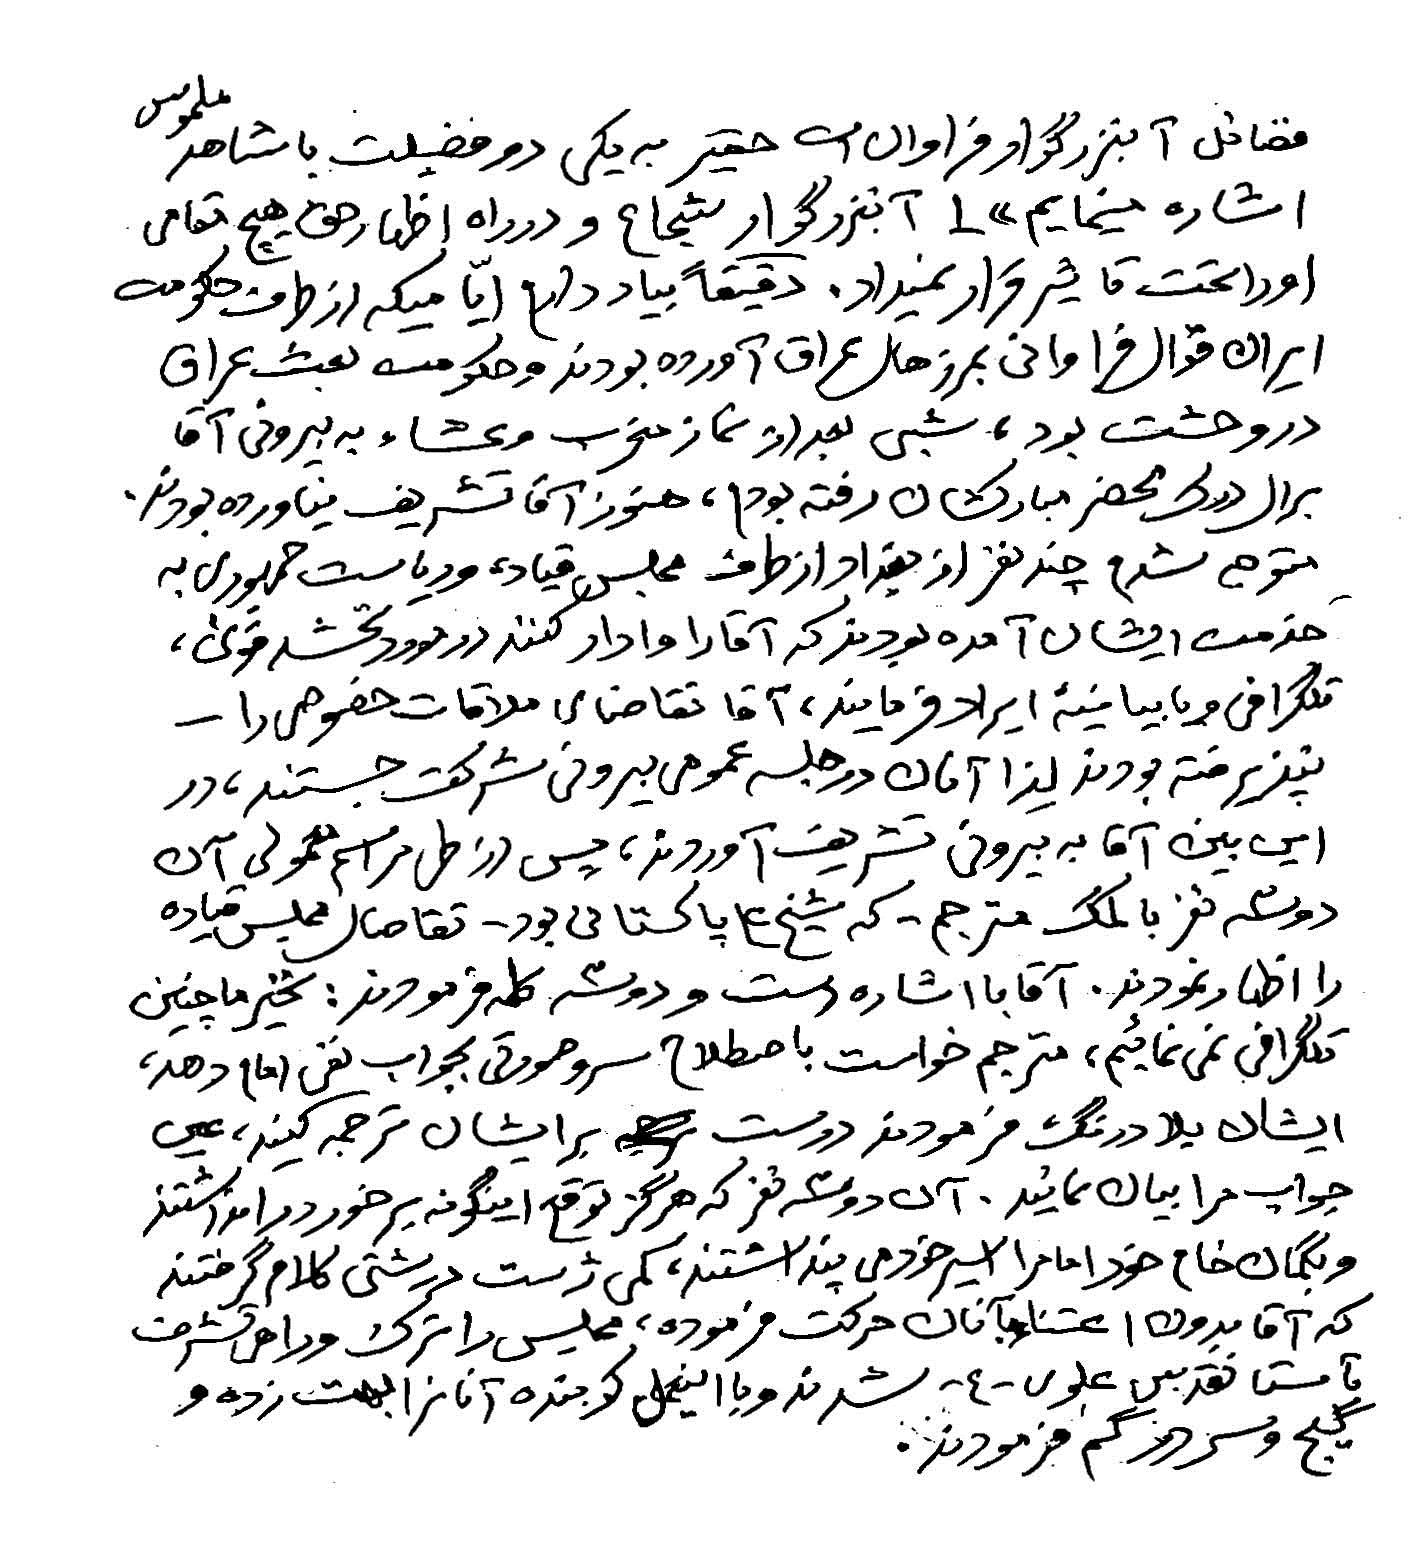 430-p163-181_Page_01